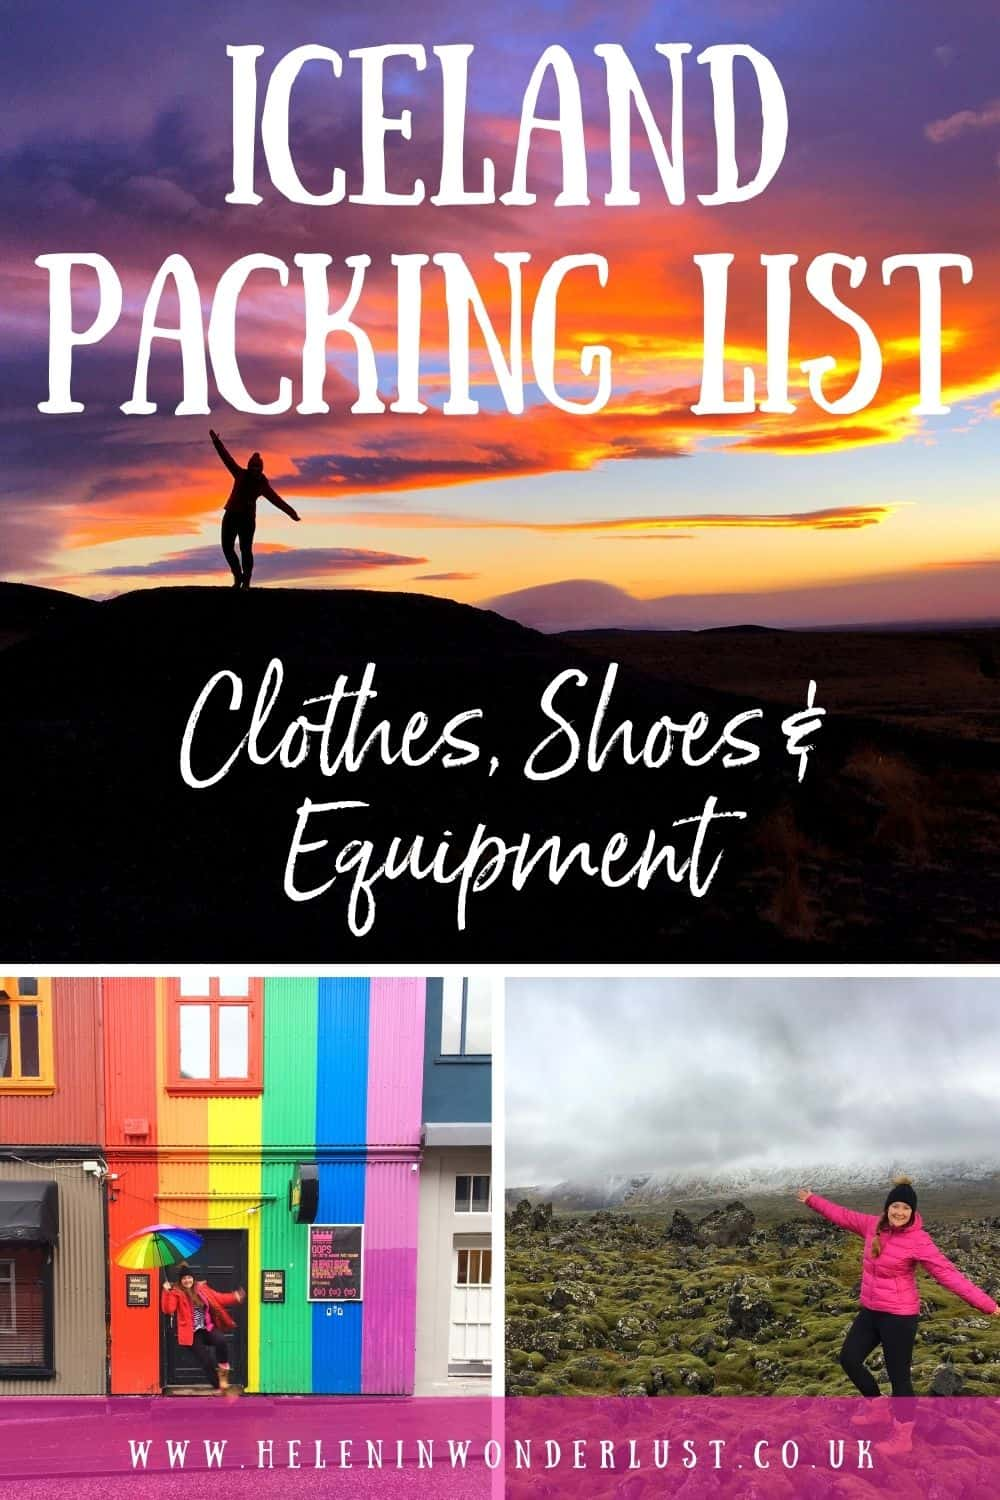 Iceland Packing List - Clothes, Shoes & Equipment